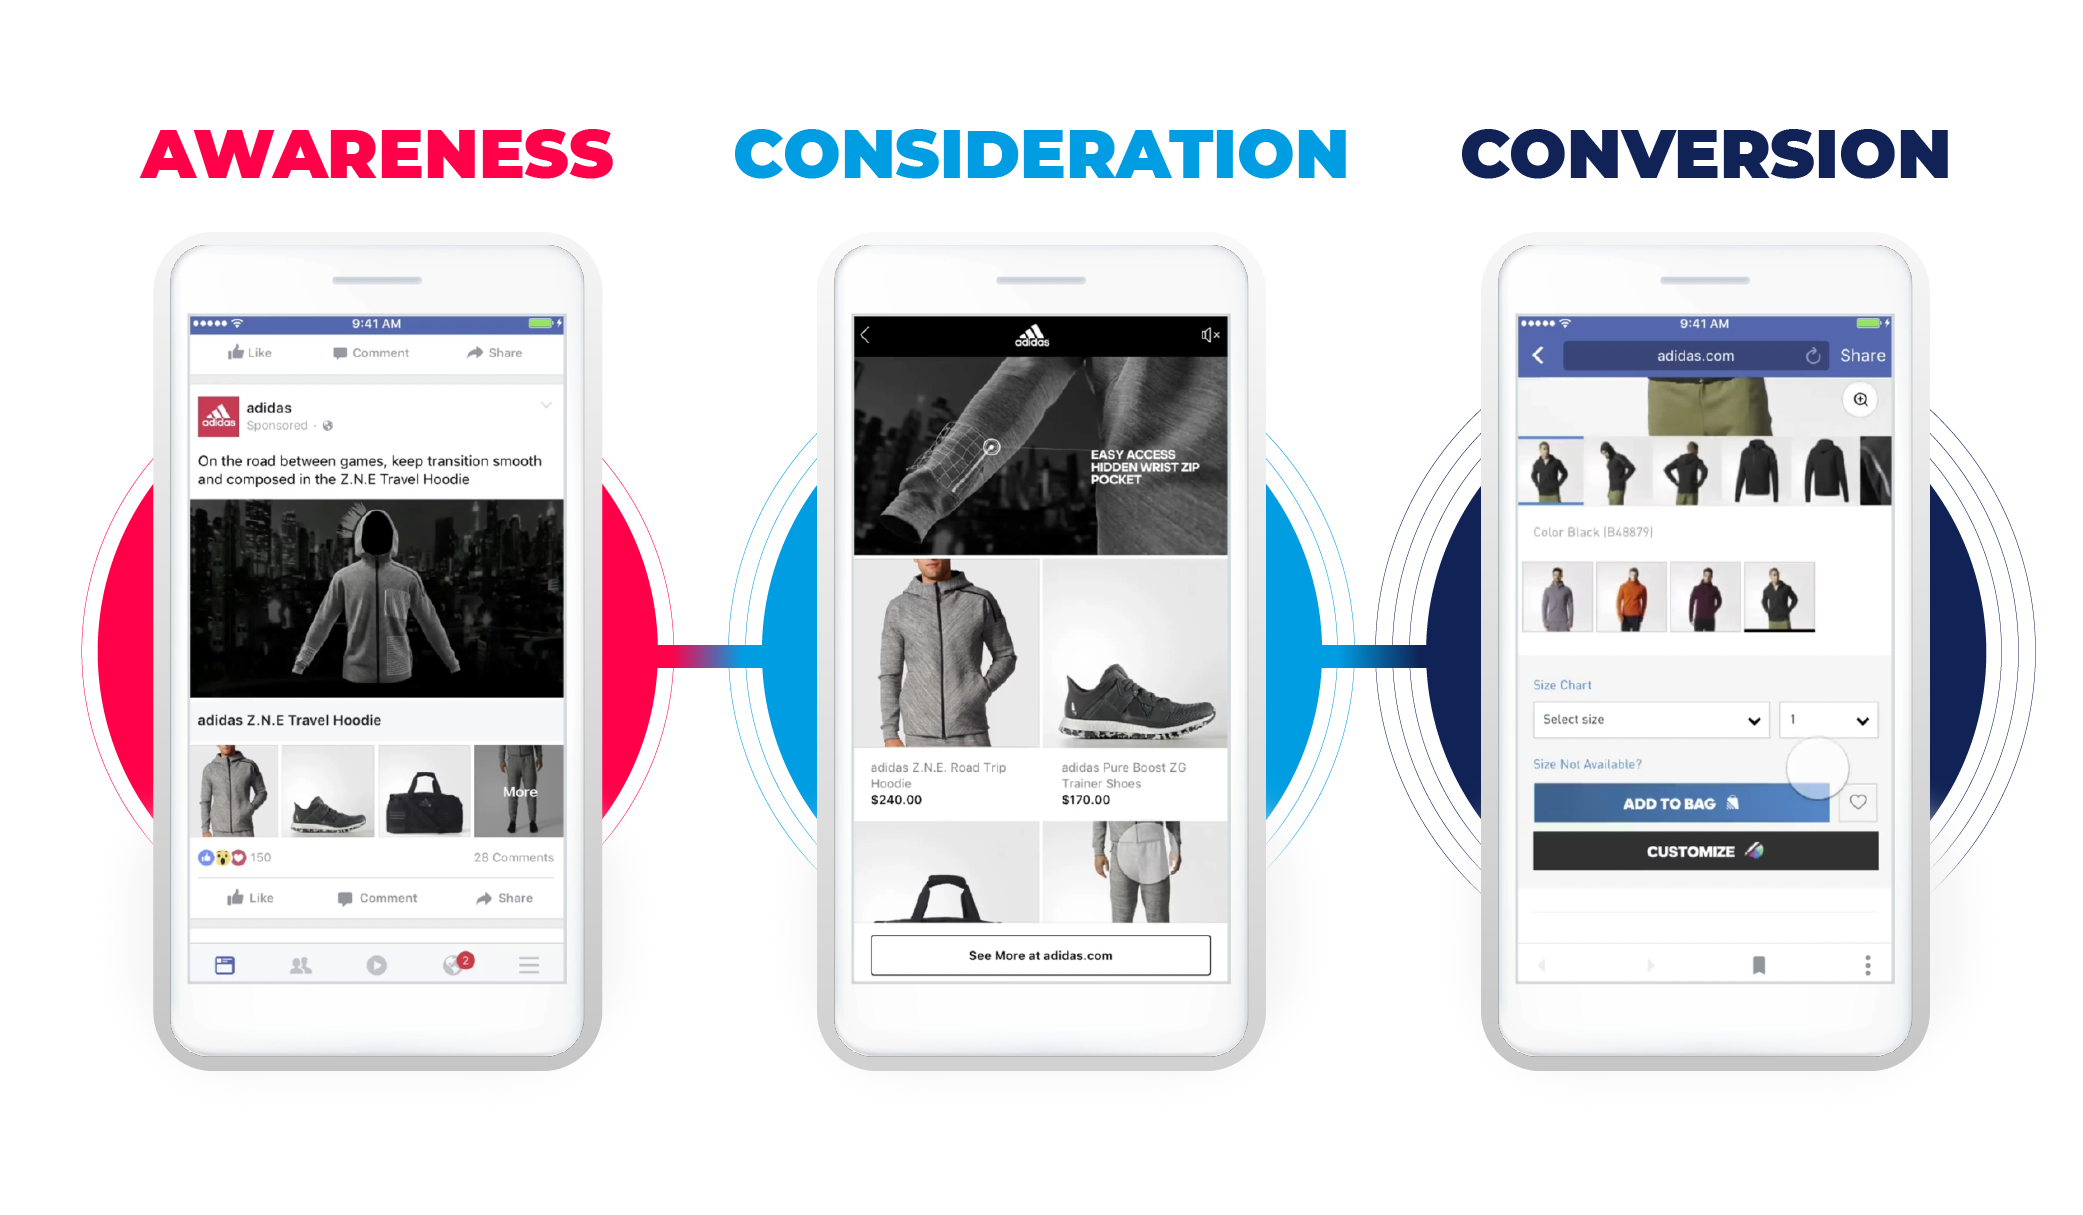 Purchase Journey Shoppable Ad